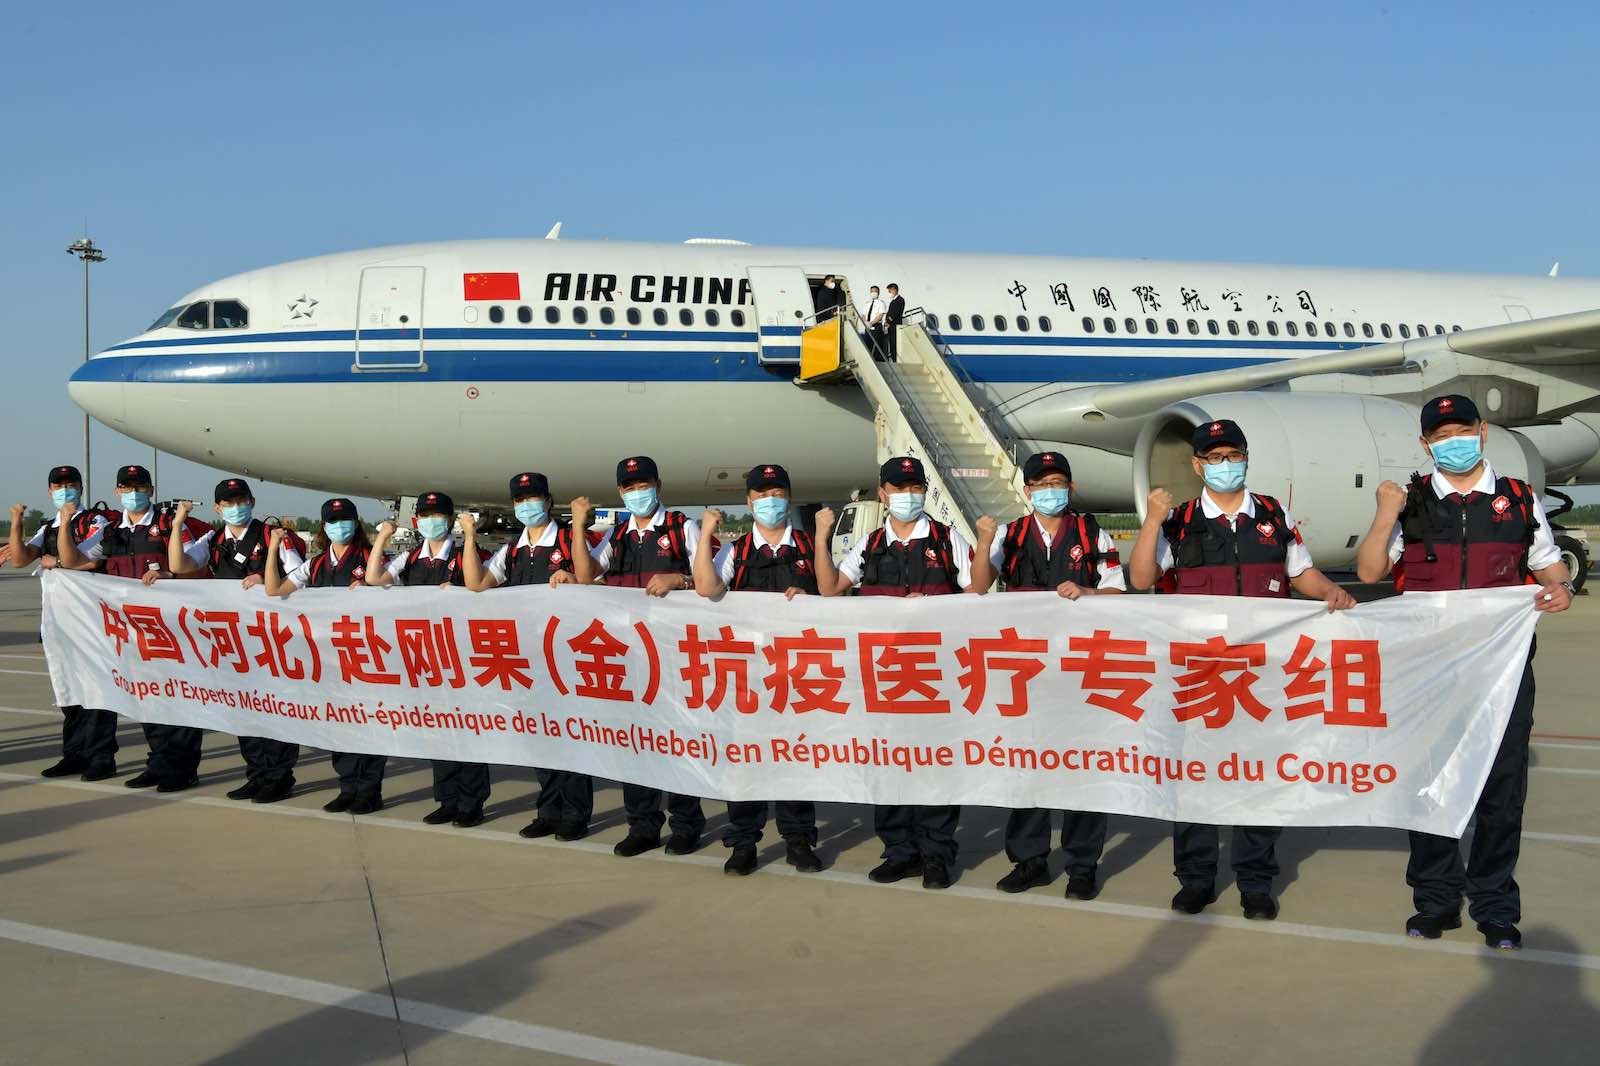 A team of anti-epidemic medical experts departing for the Democratic Republic of the Congo, Shijiazhuang, Hebei Province of China, 11 May 2020 (Zhai Yujia/China News Service via Getty Images)